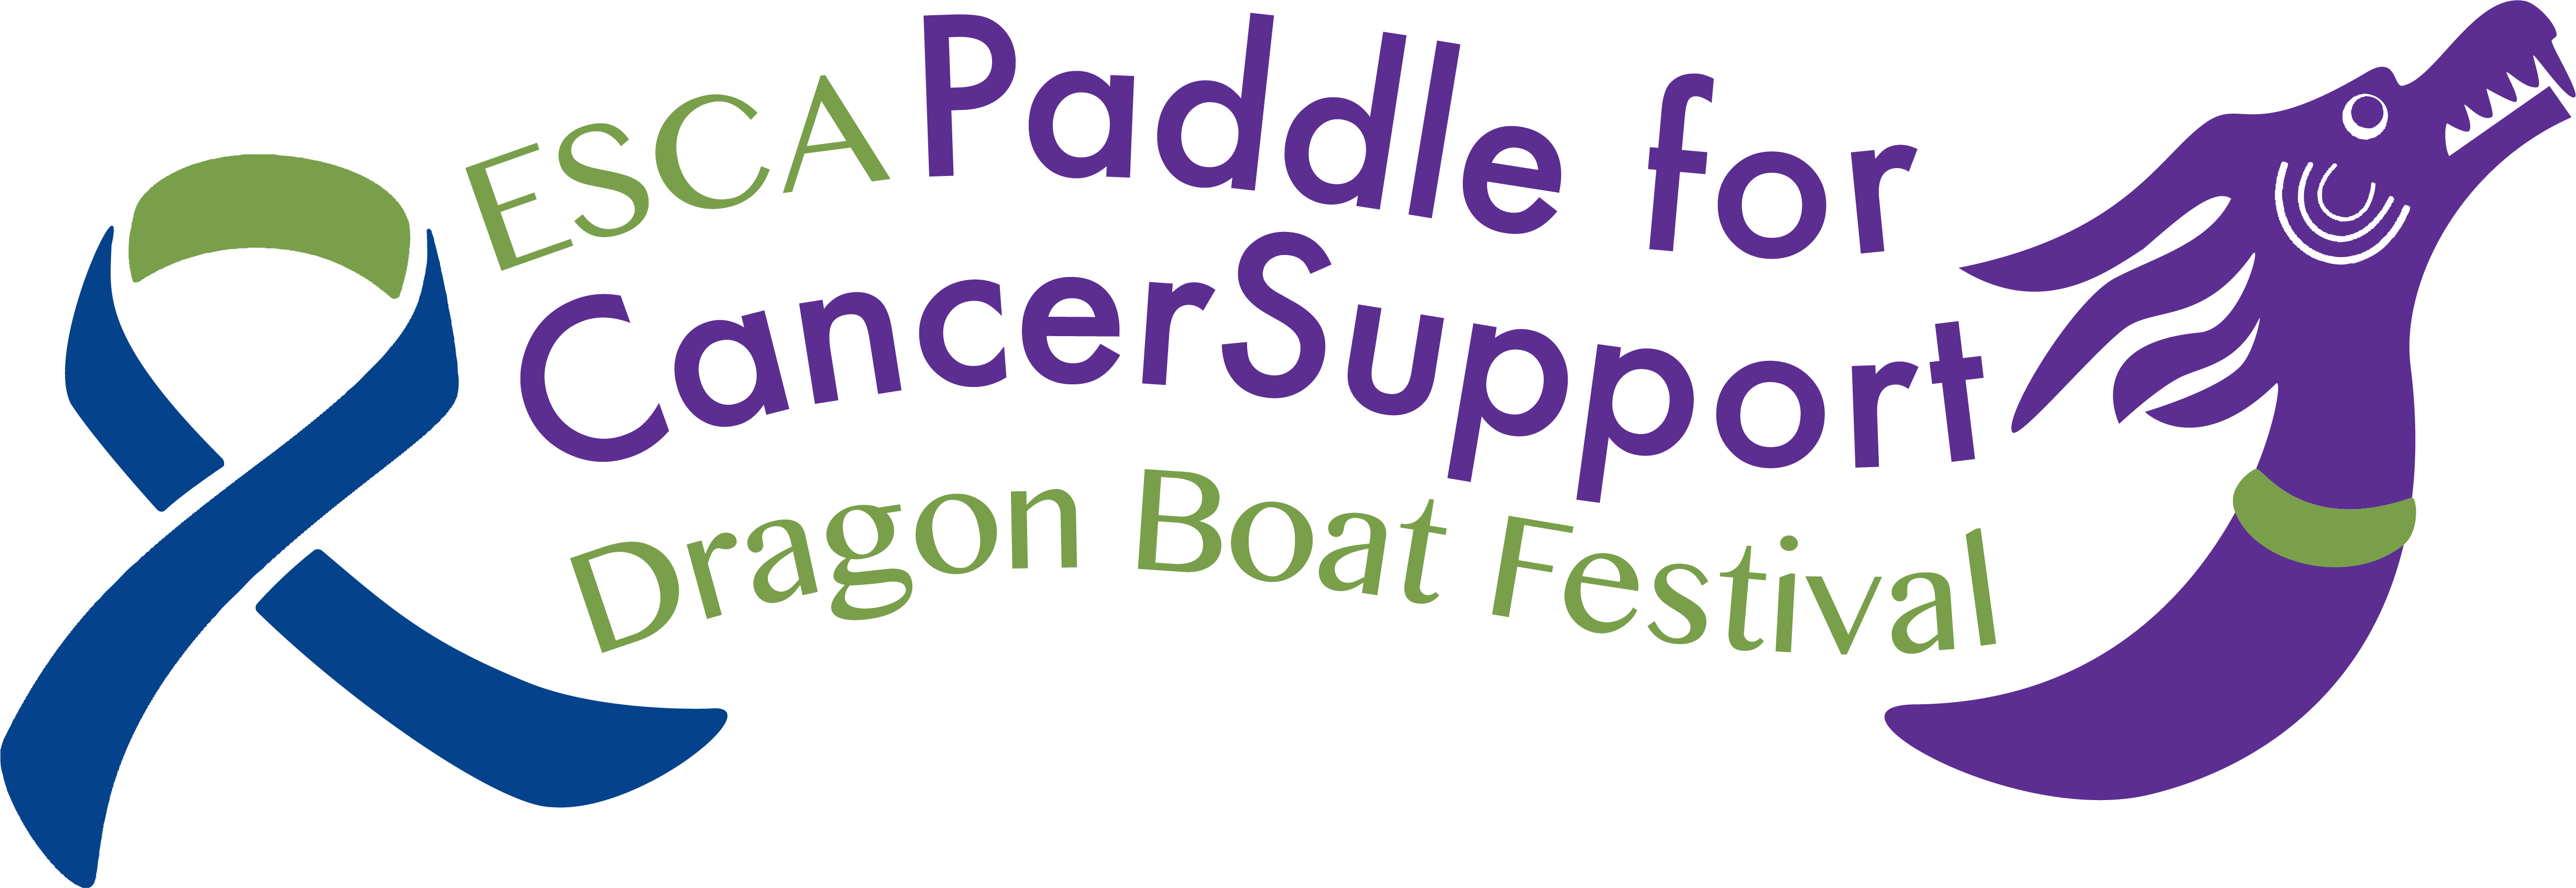 Paddle for Cancer - Dragonboat festival - Lac de Joux, Sunday 6 September 2020